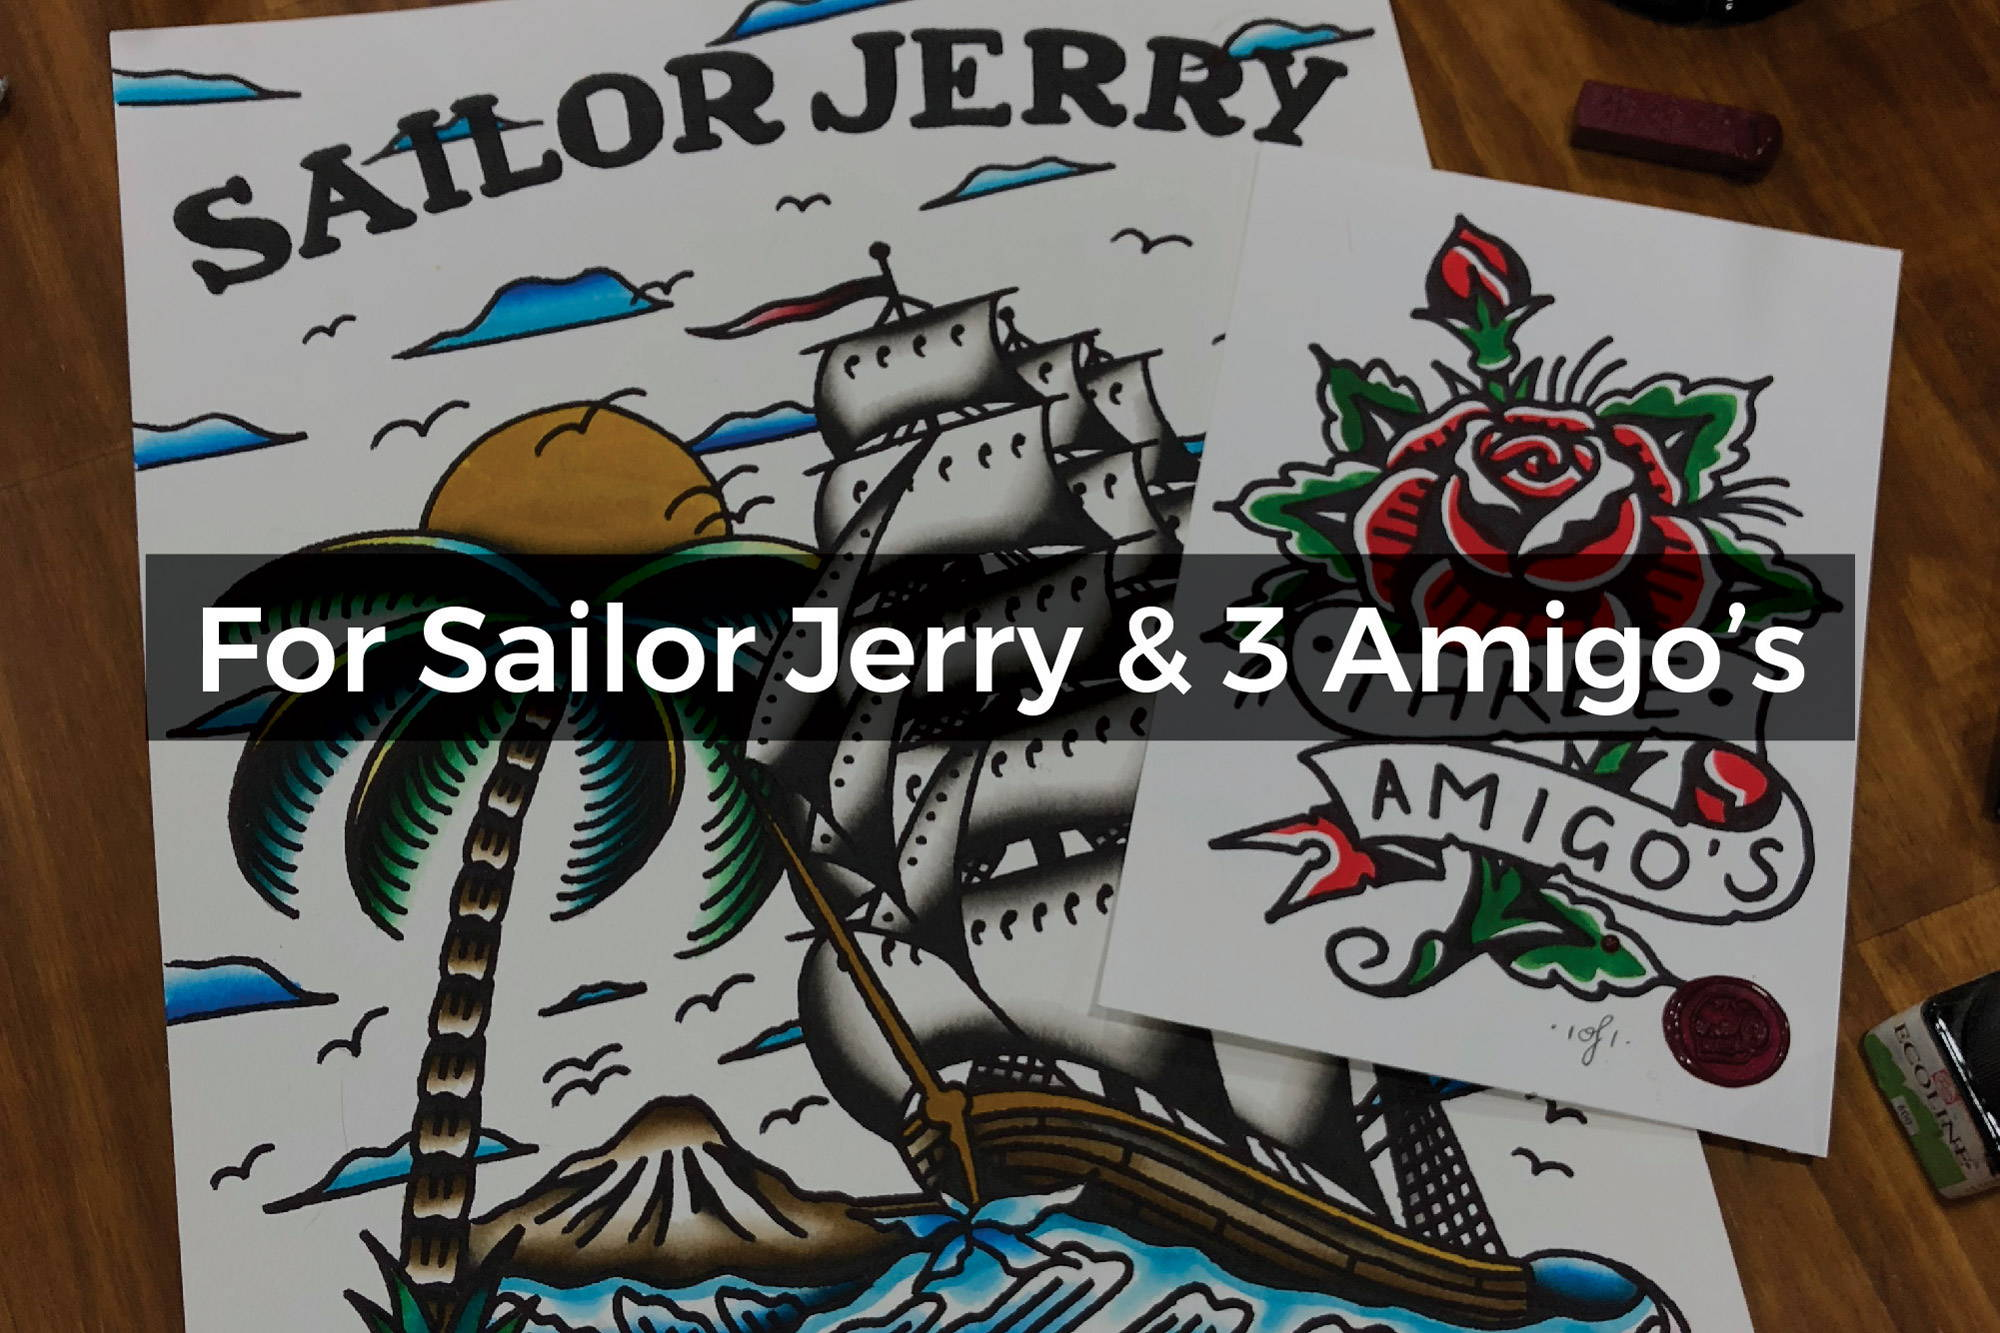 Watercolour for Sailor Jerry & Three Amigos Skate Shop by Steen Jones